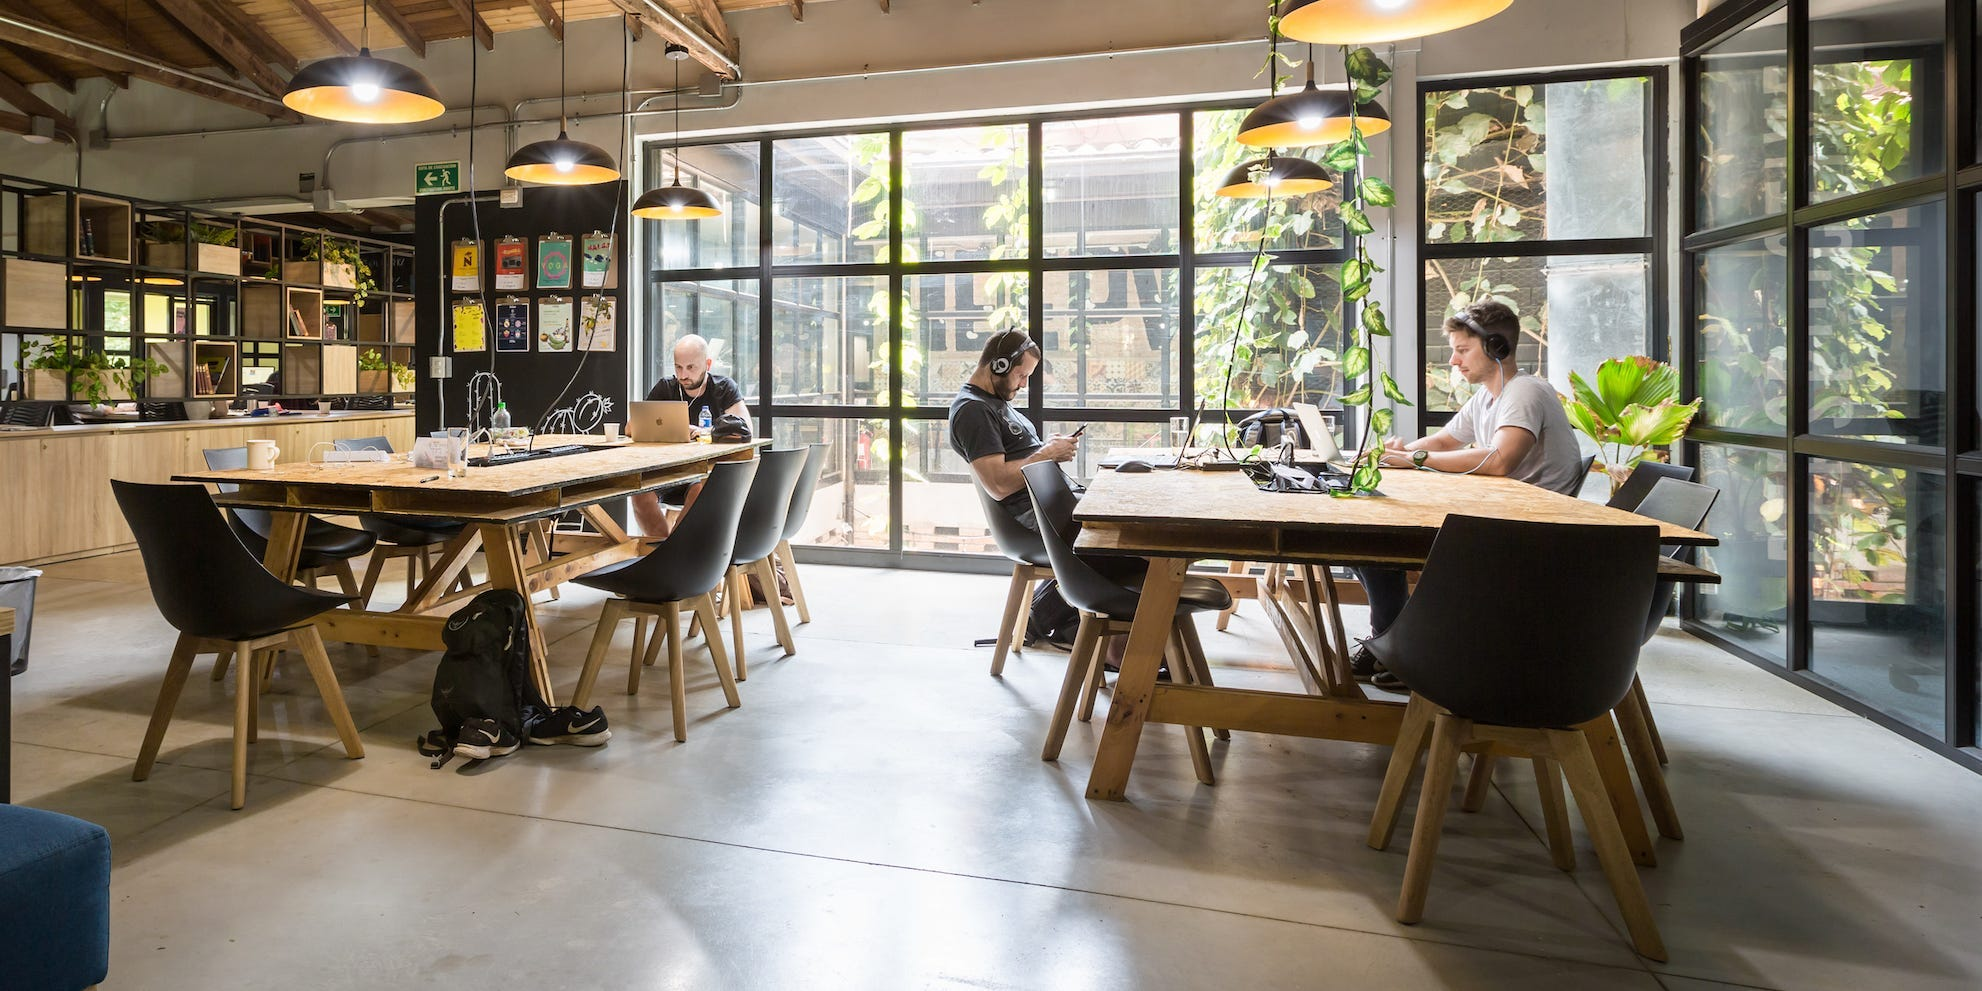 As more companies shift permanently to remote work, midsize US cities need to reshape themselves to woo remote workers